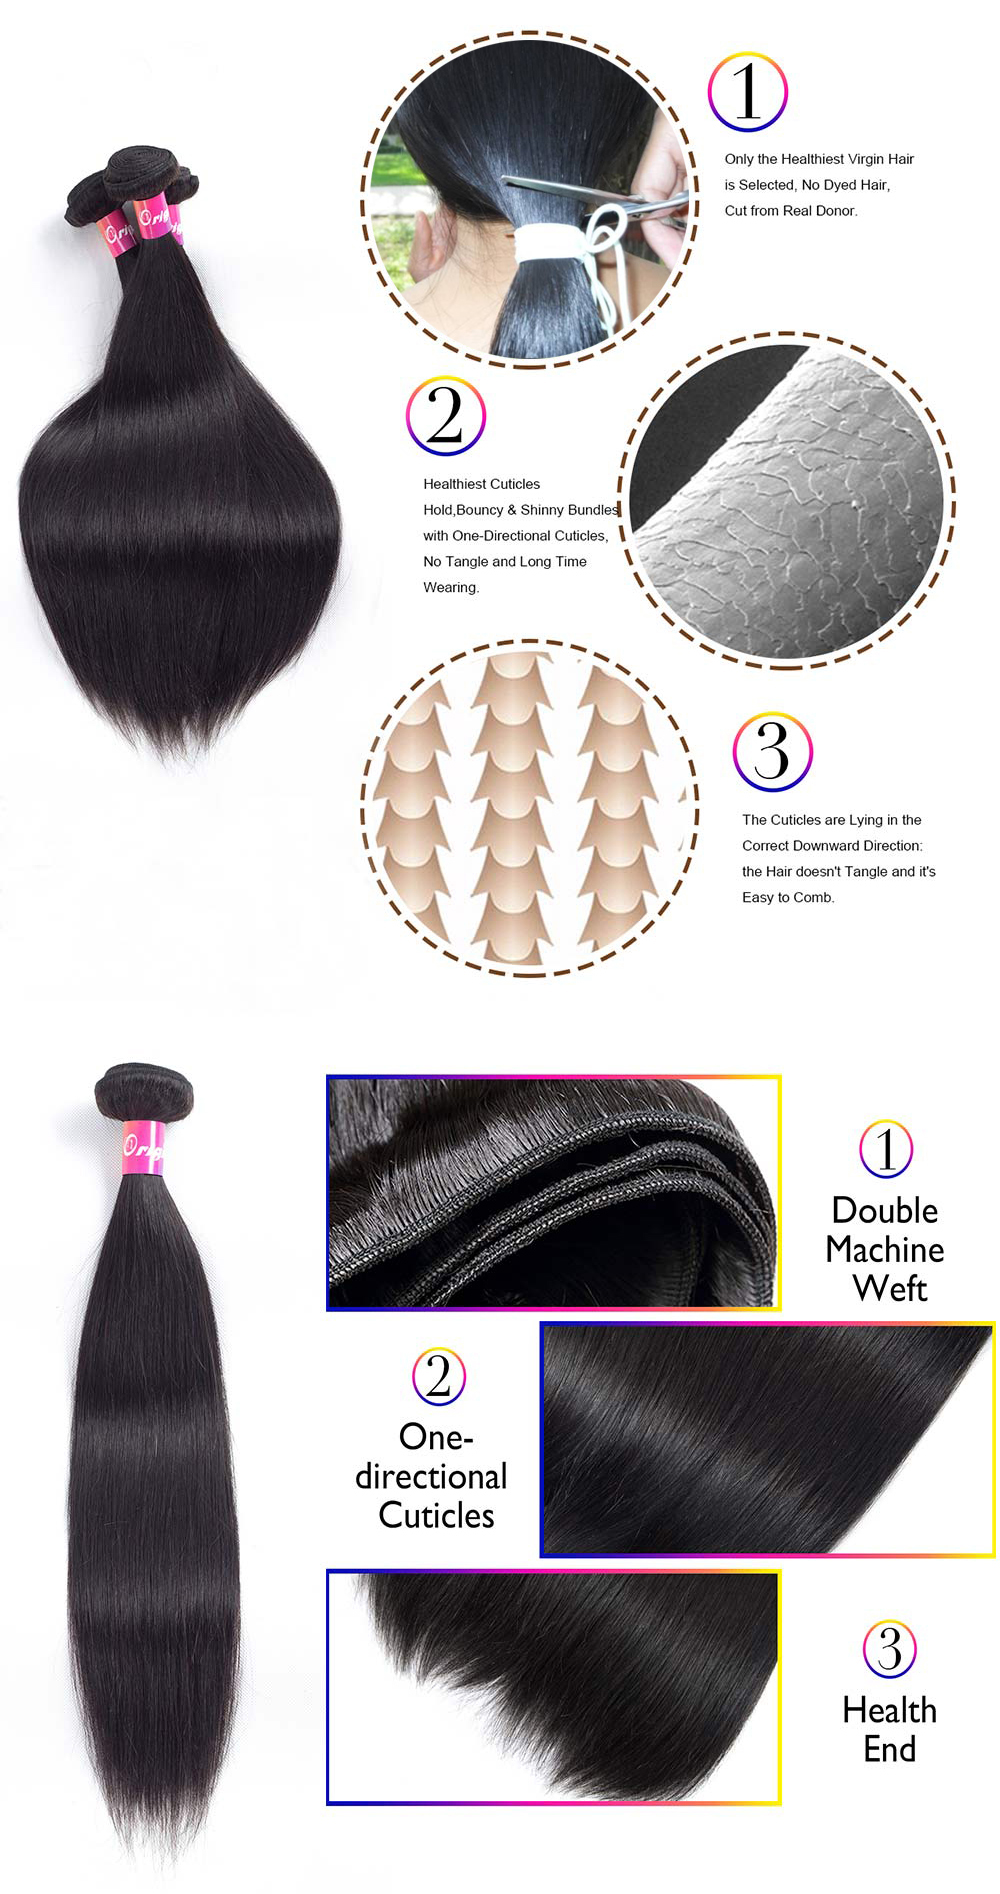 360 lace frontal with bundle 360 lace frontal with bundle straight hair China Brazilian Straight Hair Suppliers Originea 360 Lace Frontal Closure With 3pcs Brazilian Straight Hair Bundles Human Hair